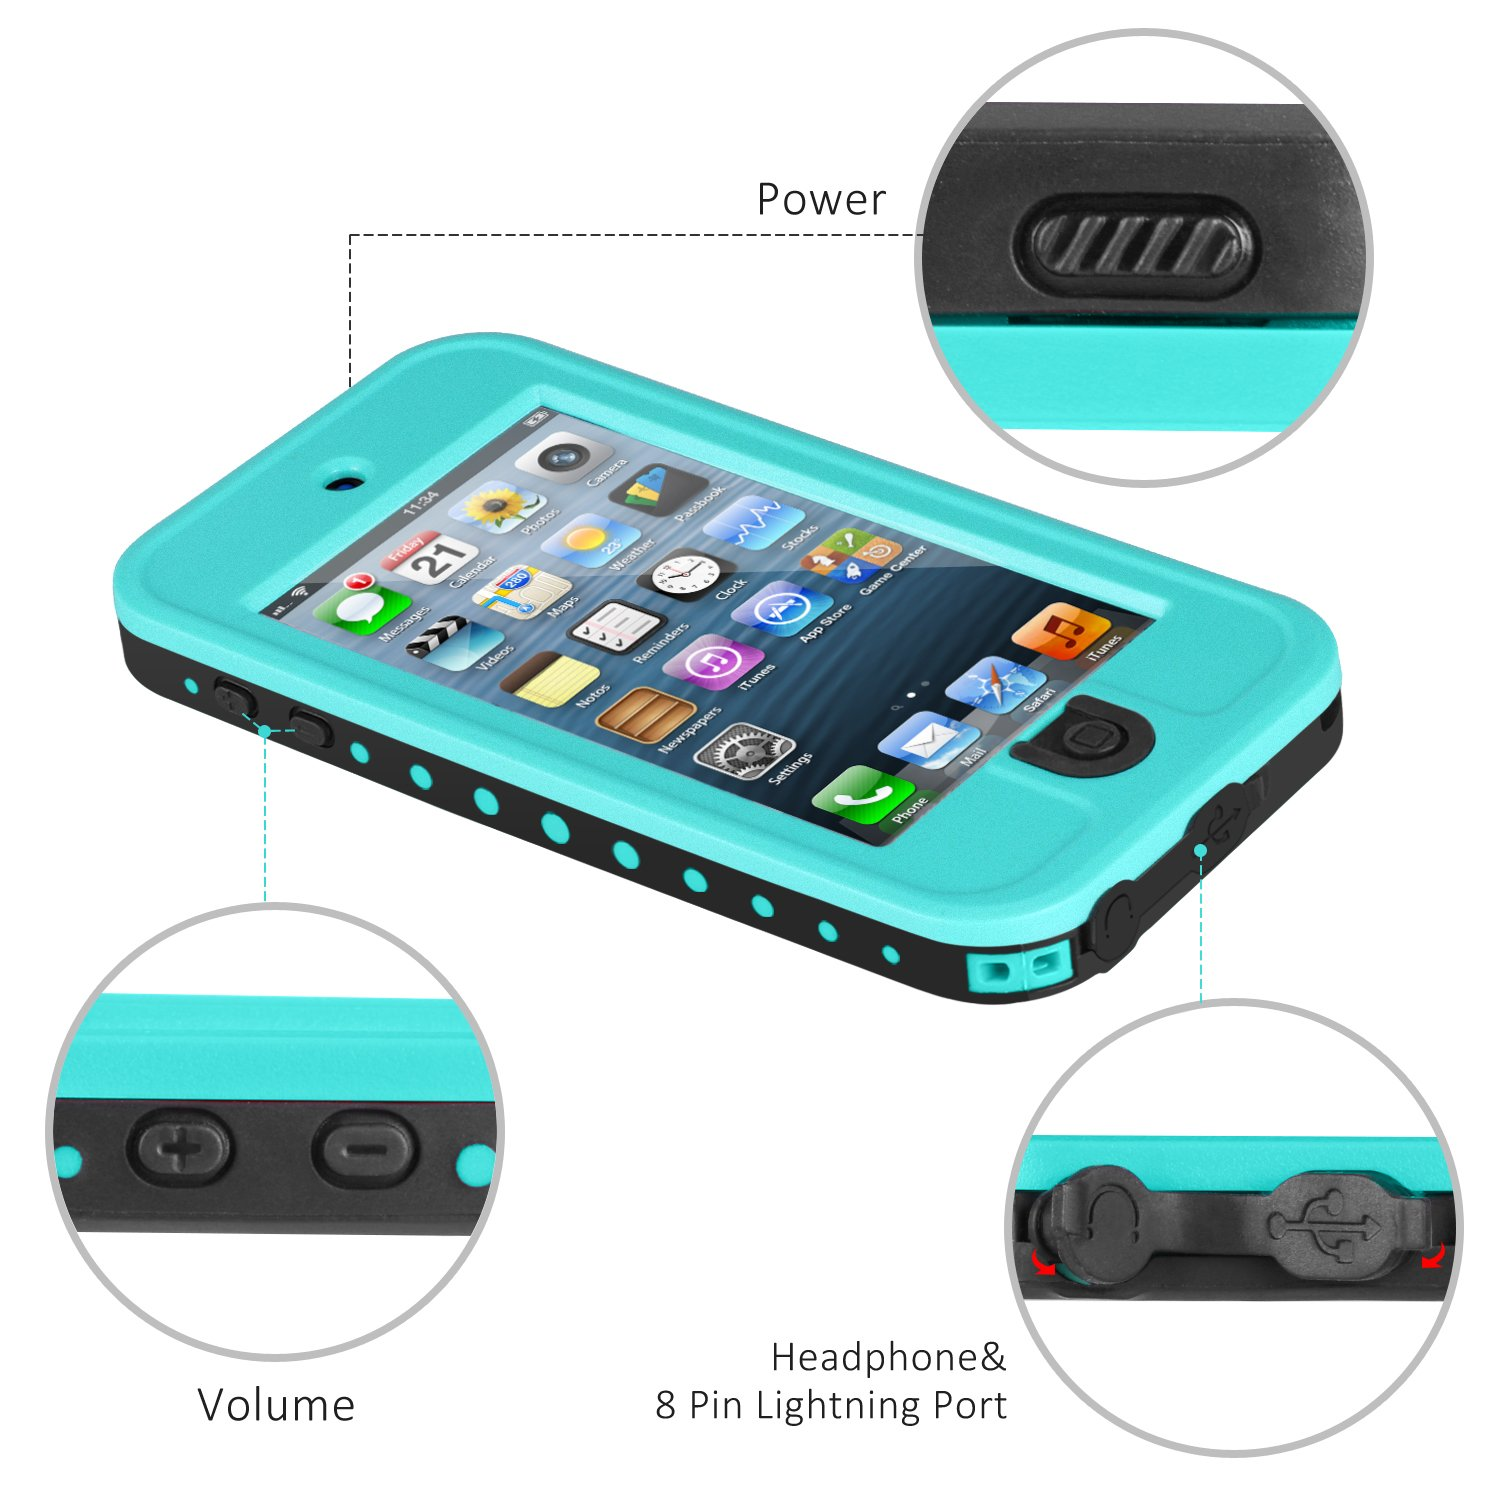 Waterproof Case for iPod 5 iPod 6, Meritcase Waterproof Shockproof Dirtproof Snowproof Case Cover with Kickstand for Apple iPod Touch 5th/6th Generation for Swimming Diving Surfing Snorkeling (Blue) by meritcase (Image #4)